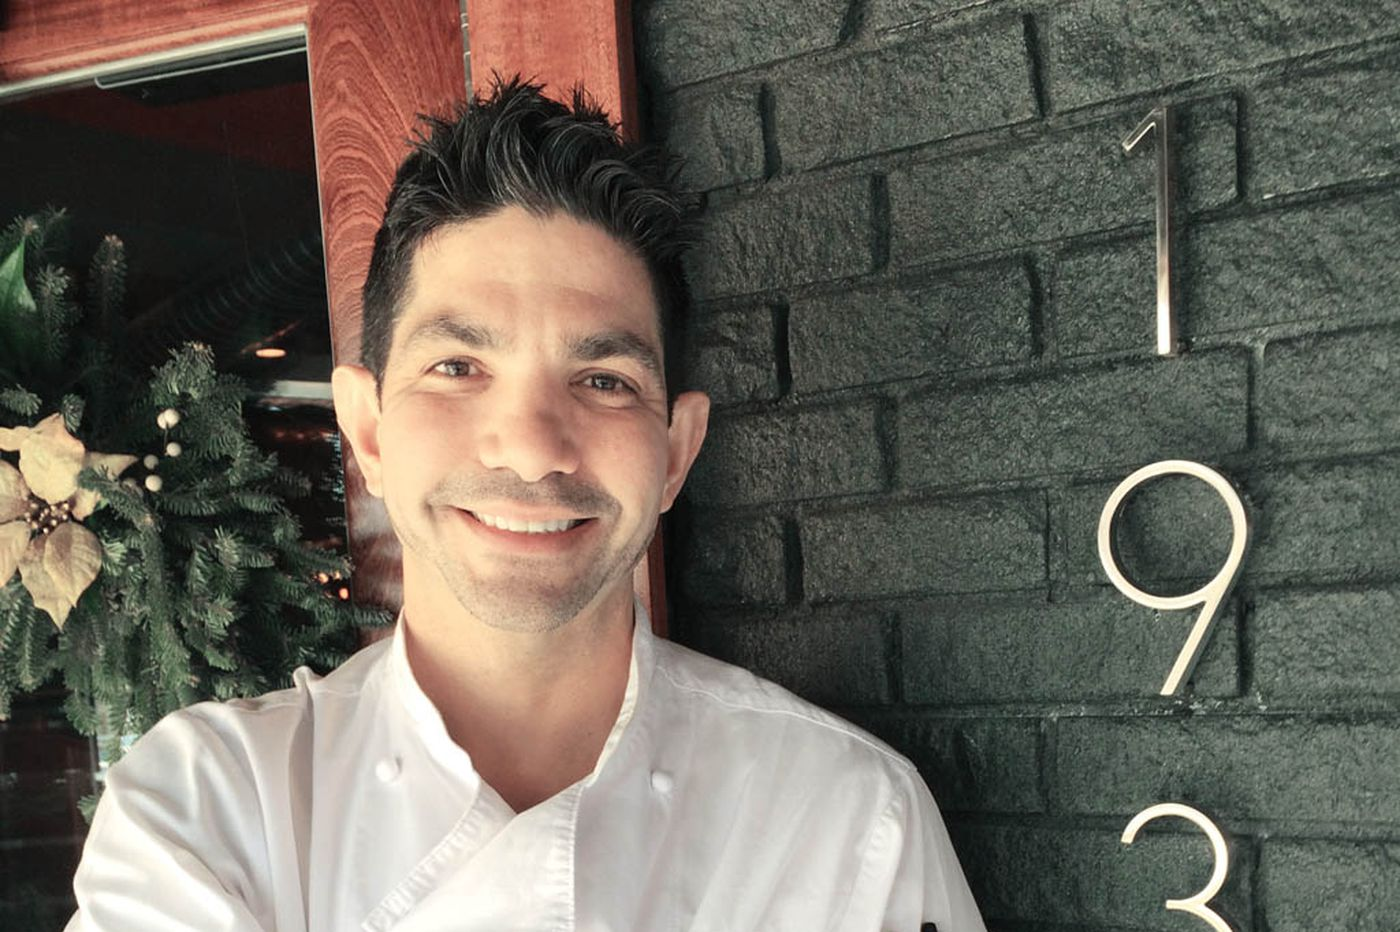 Chillin' Wit' Luke Palladino, celebrated chef